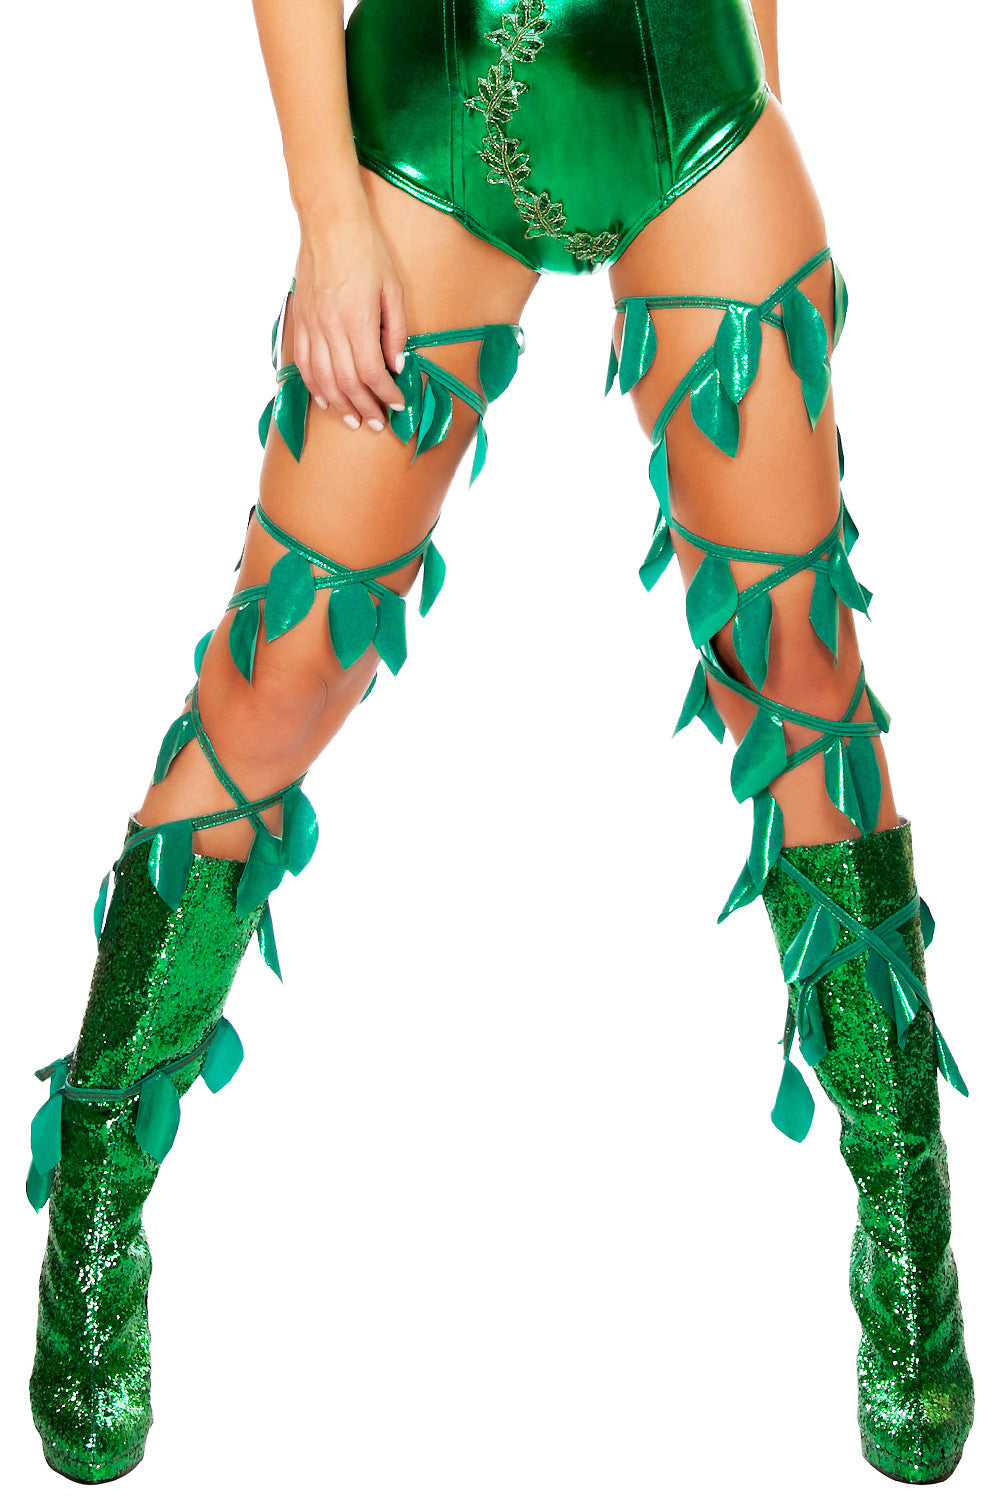 Green Leaf Leg Wraps